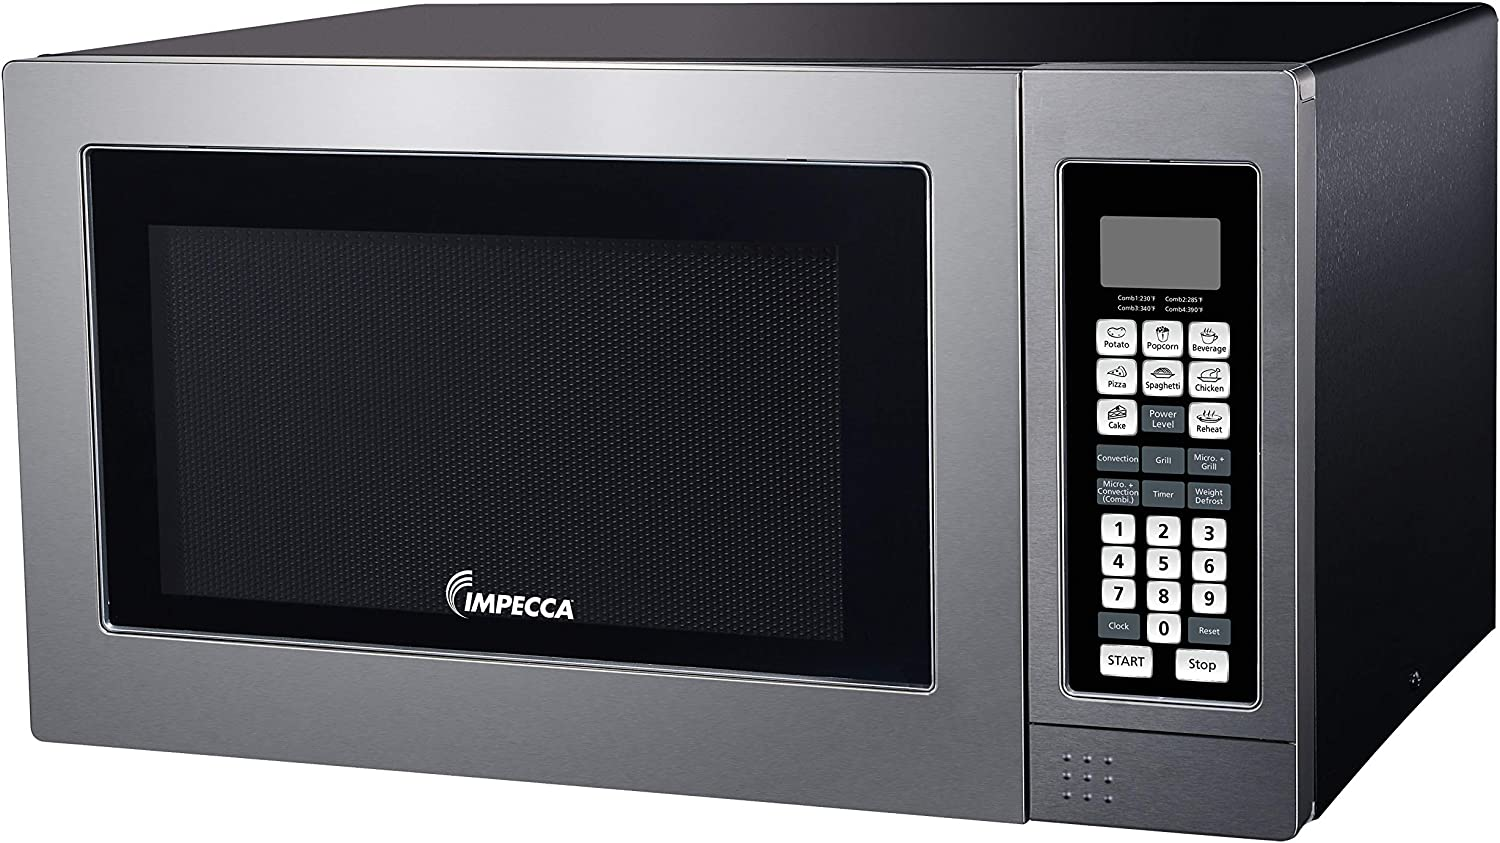 Impecca 3-in-1 Countertop Microwave Oven, Convection Oven and Broiler Grill, 8 Pre-Set Menus, 10 Power Levels, Child Lock, Cooking Complete Notification, 1.2 Cu. Ft. 1000-Watts, Stainless Steel